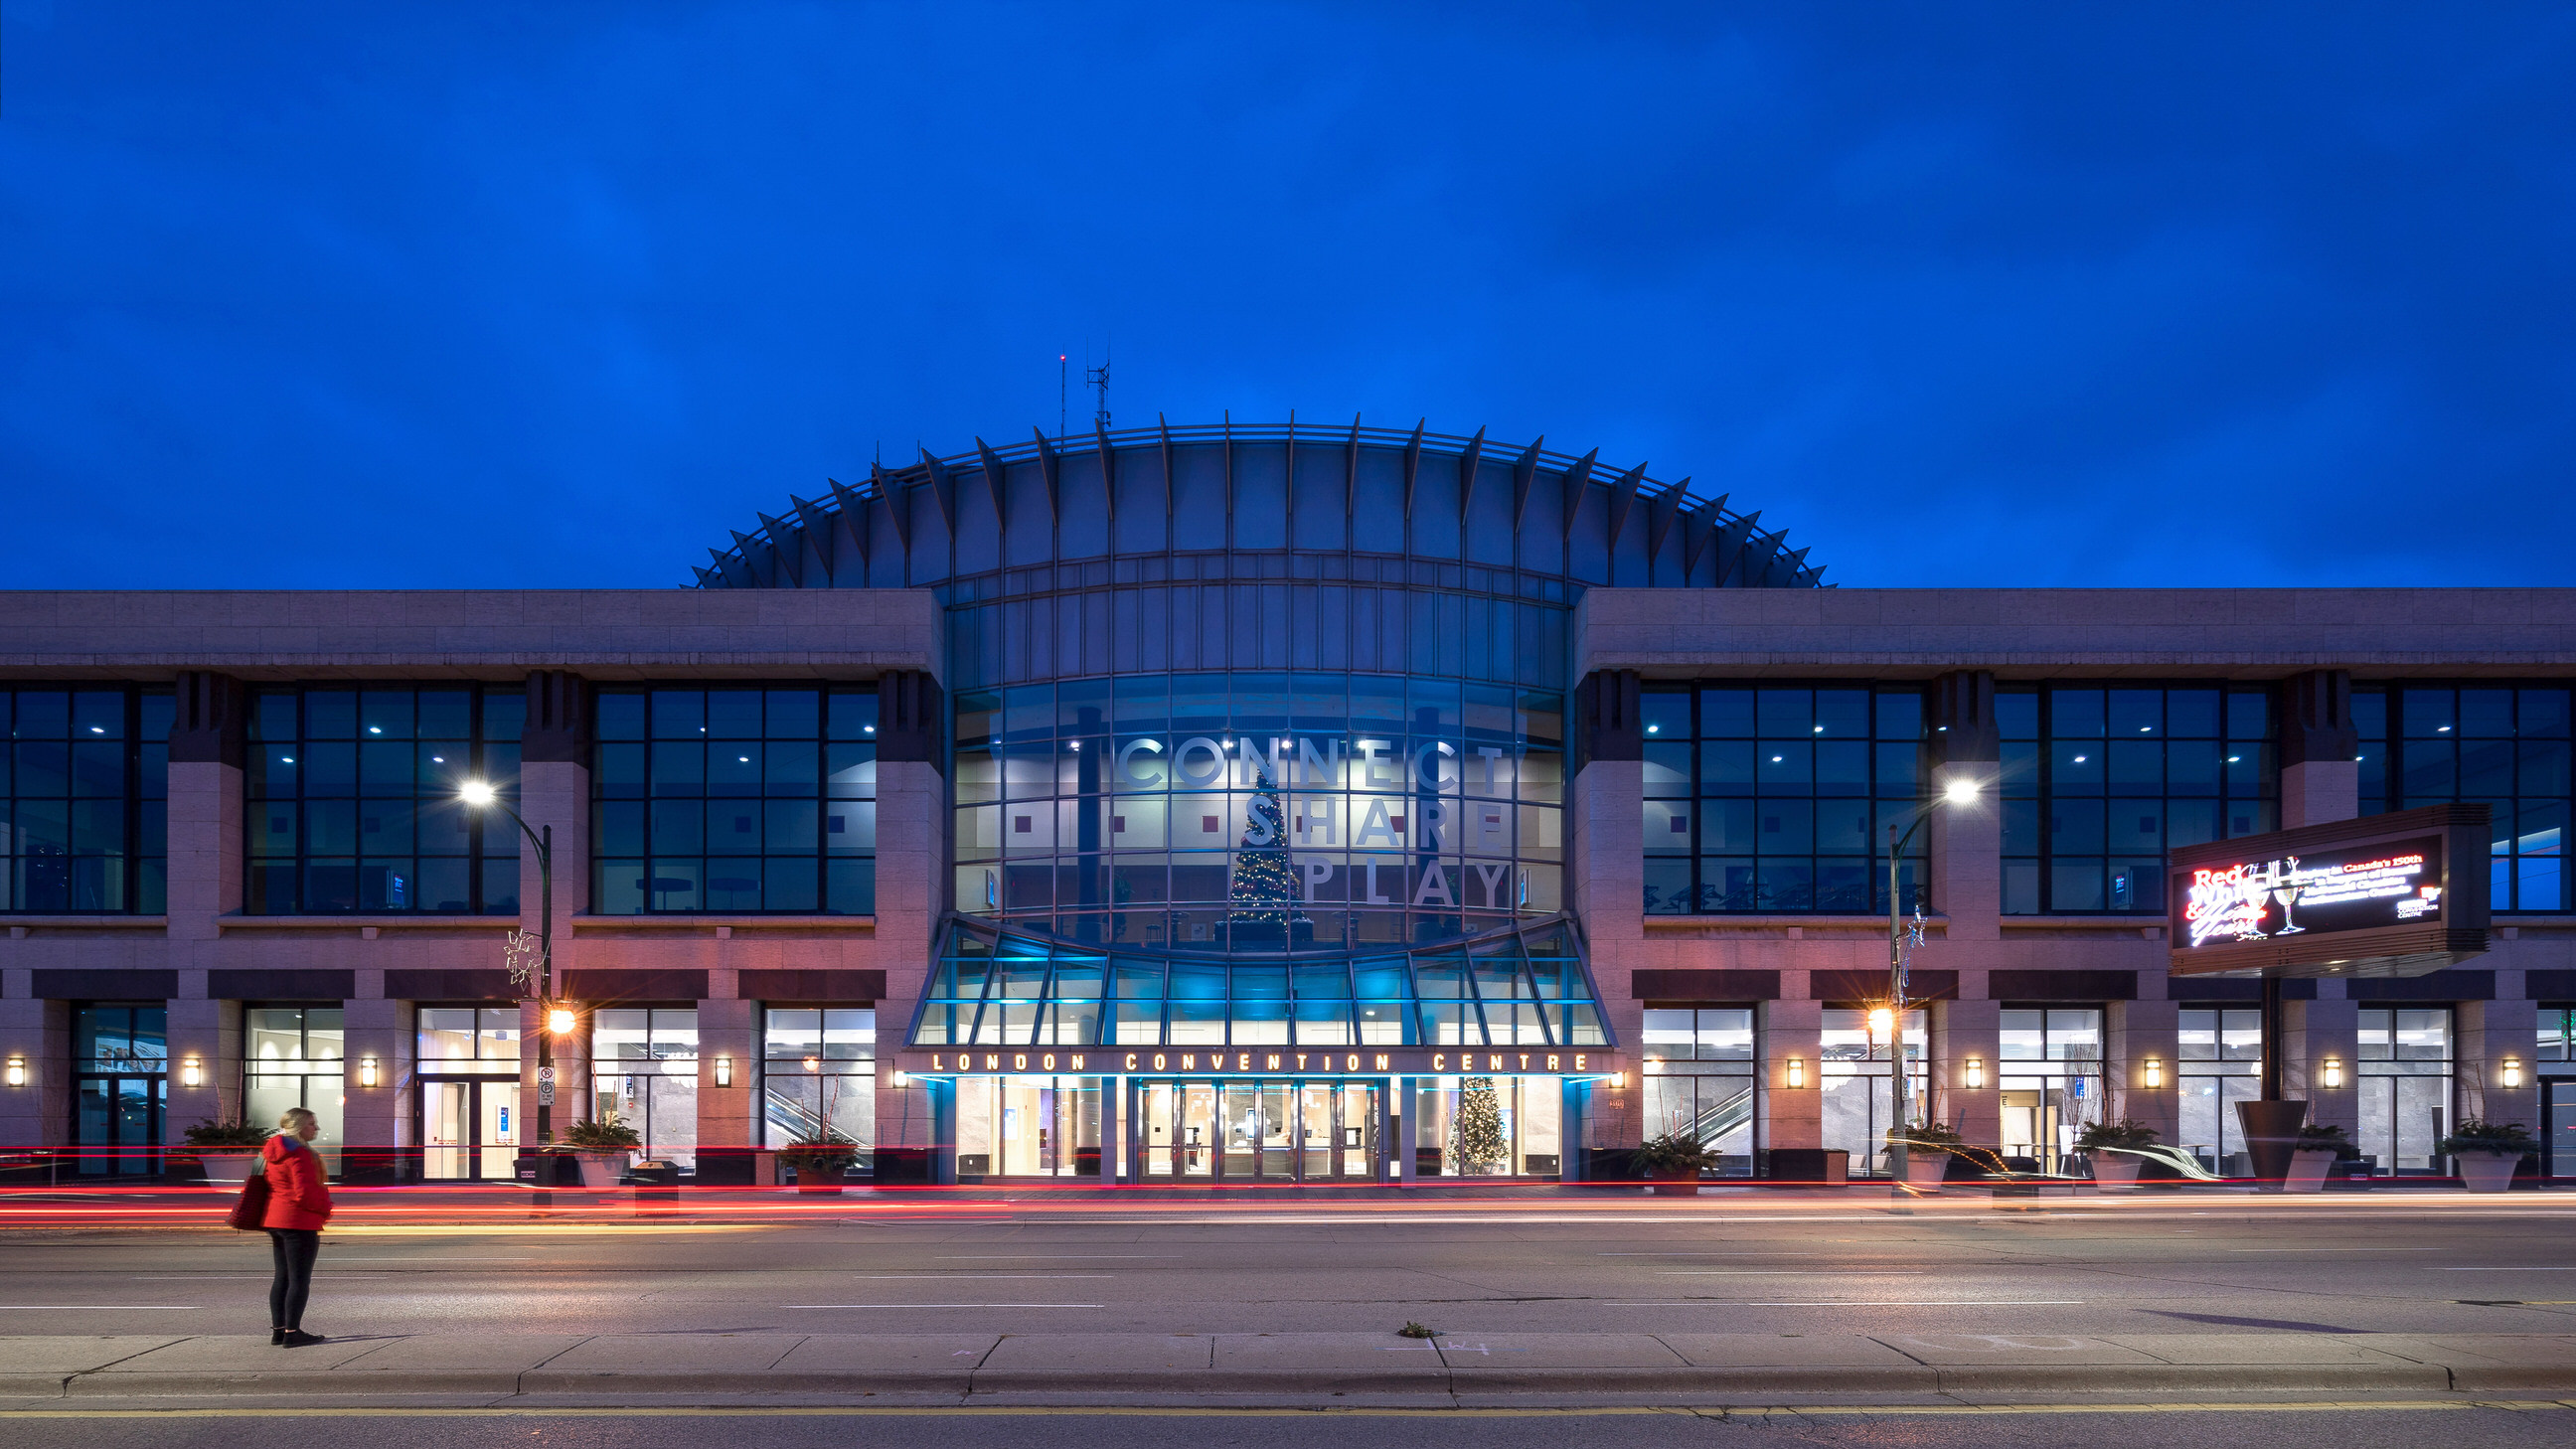 An architectural photo shot at twilight, looking at the London Convention Centre by Photographer Scott Webb